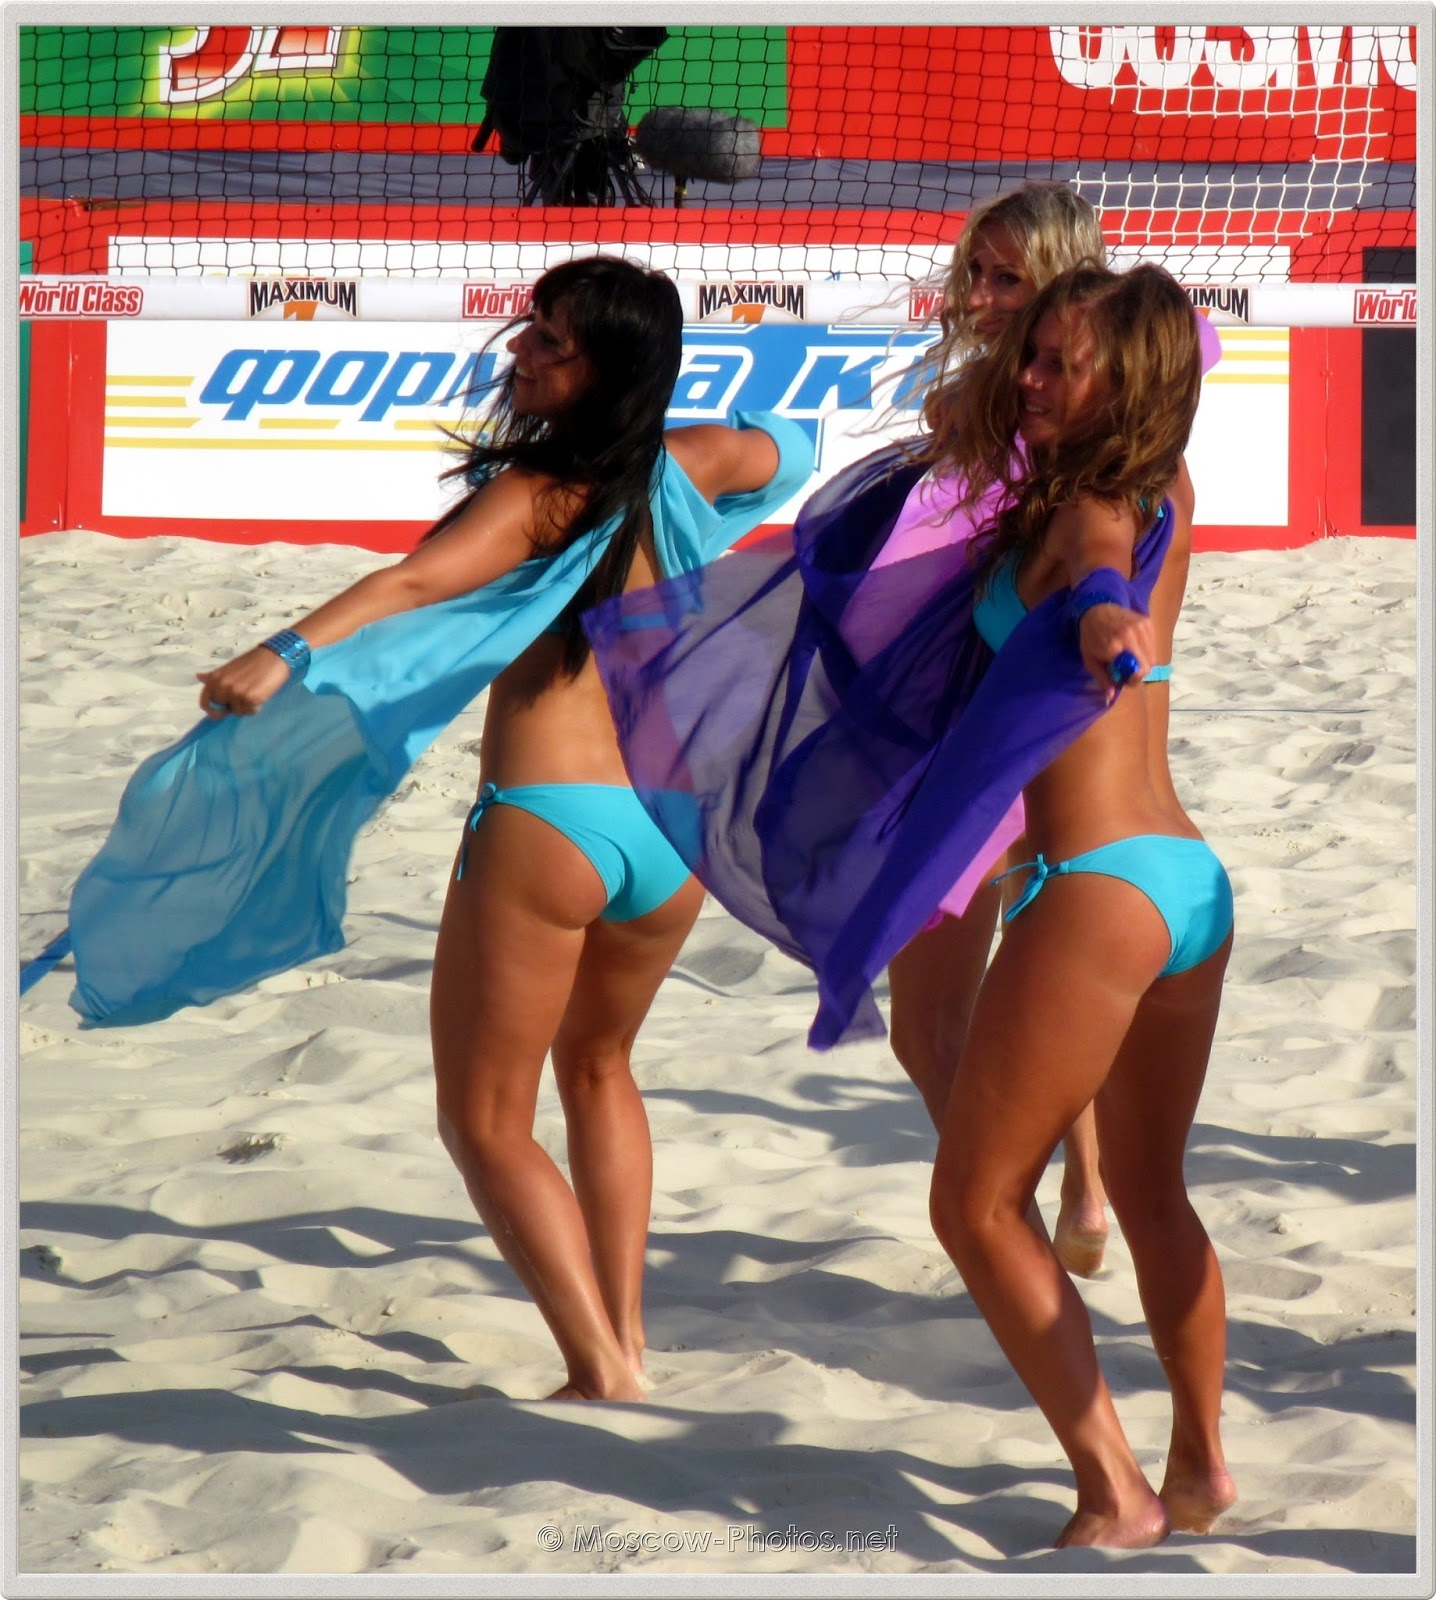 Blue Bikini Beach Volleyball Cheerleaders